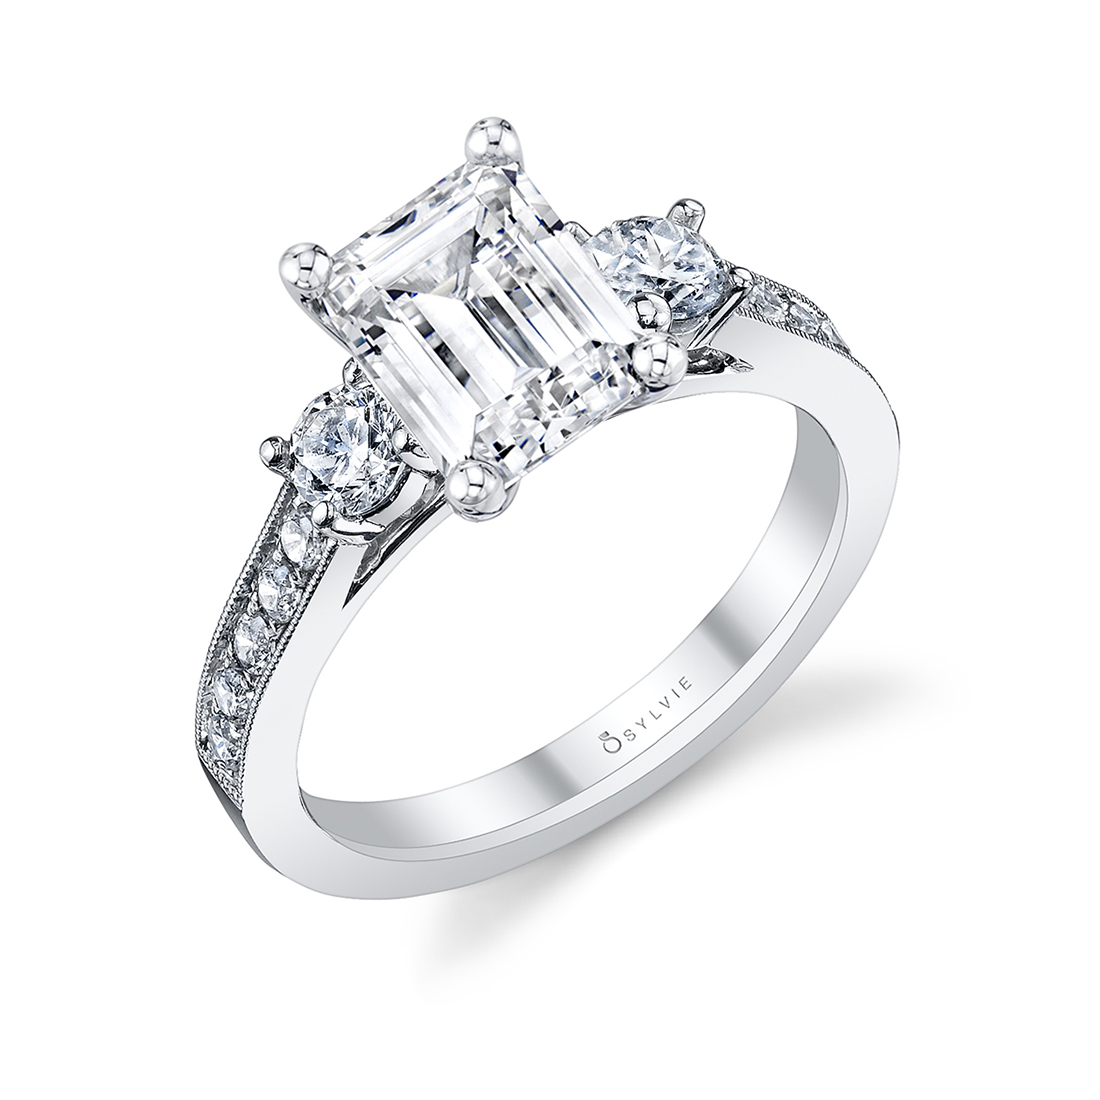 Emerald Cut 3 Stone Engagement Ring in white gold S1083-EM